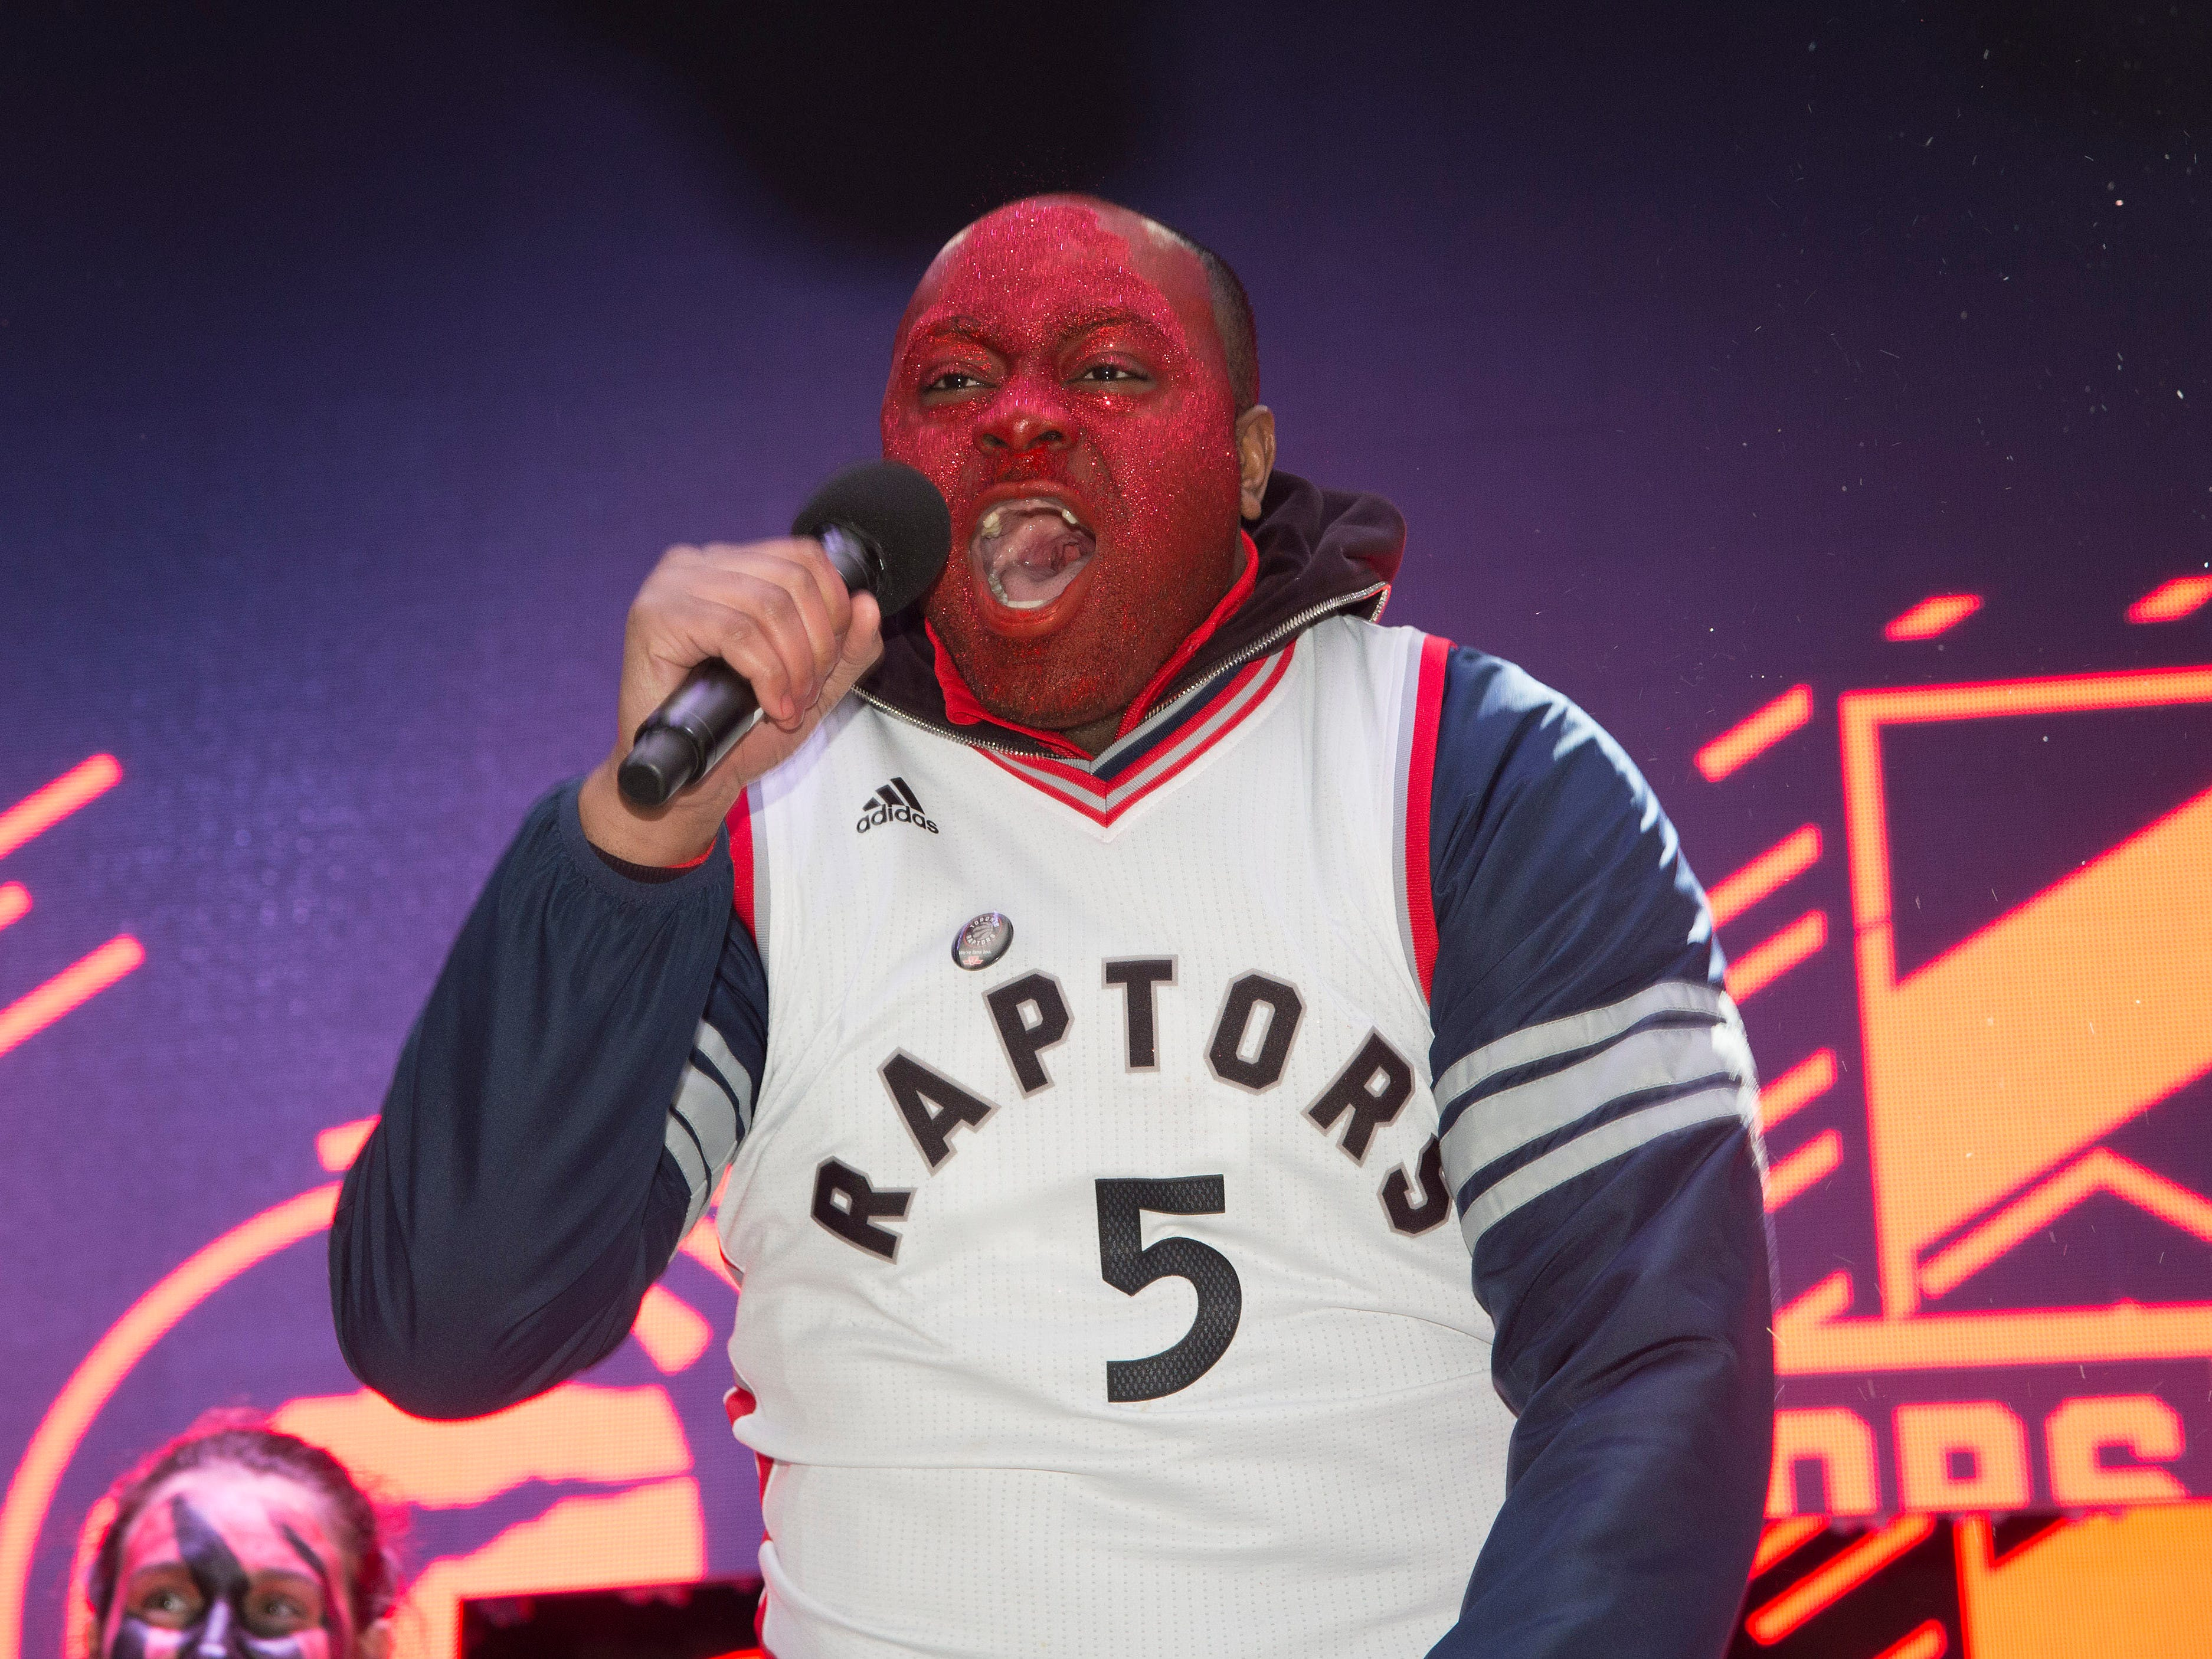 April 16: A Raptors fan shows his support before Game 2 against the Magic.